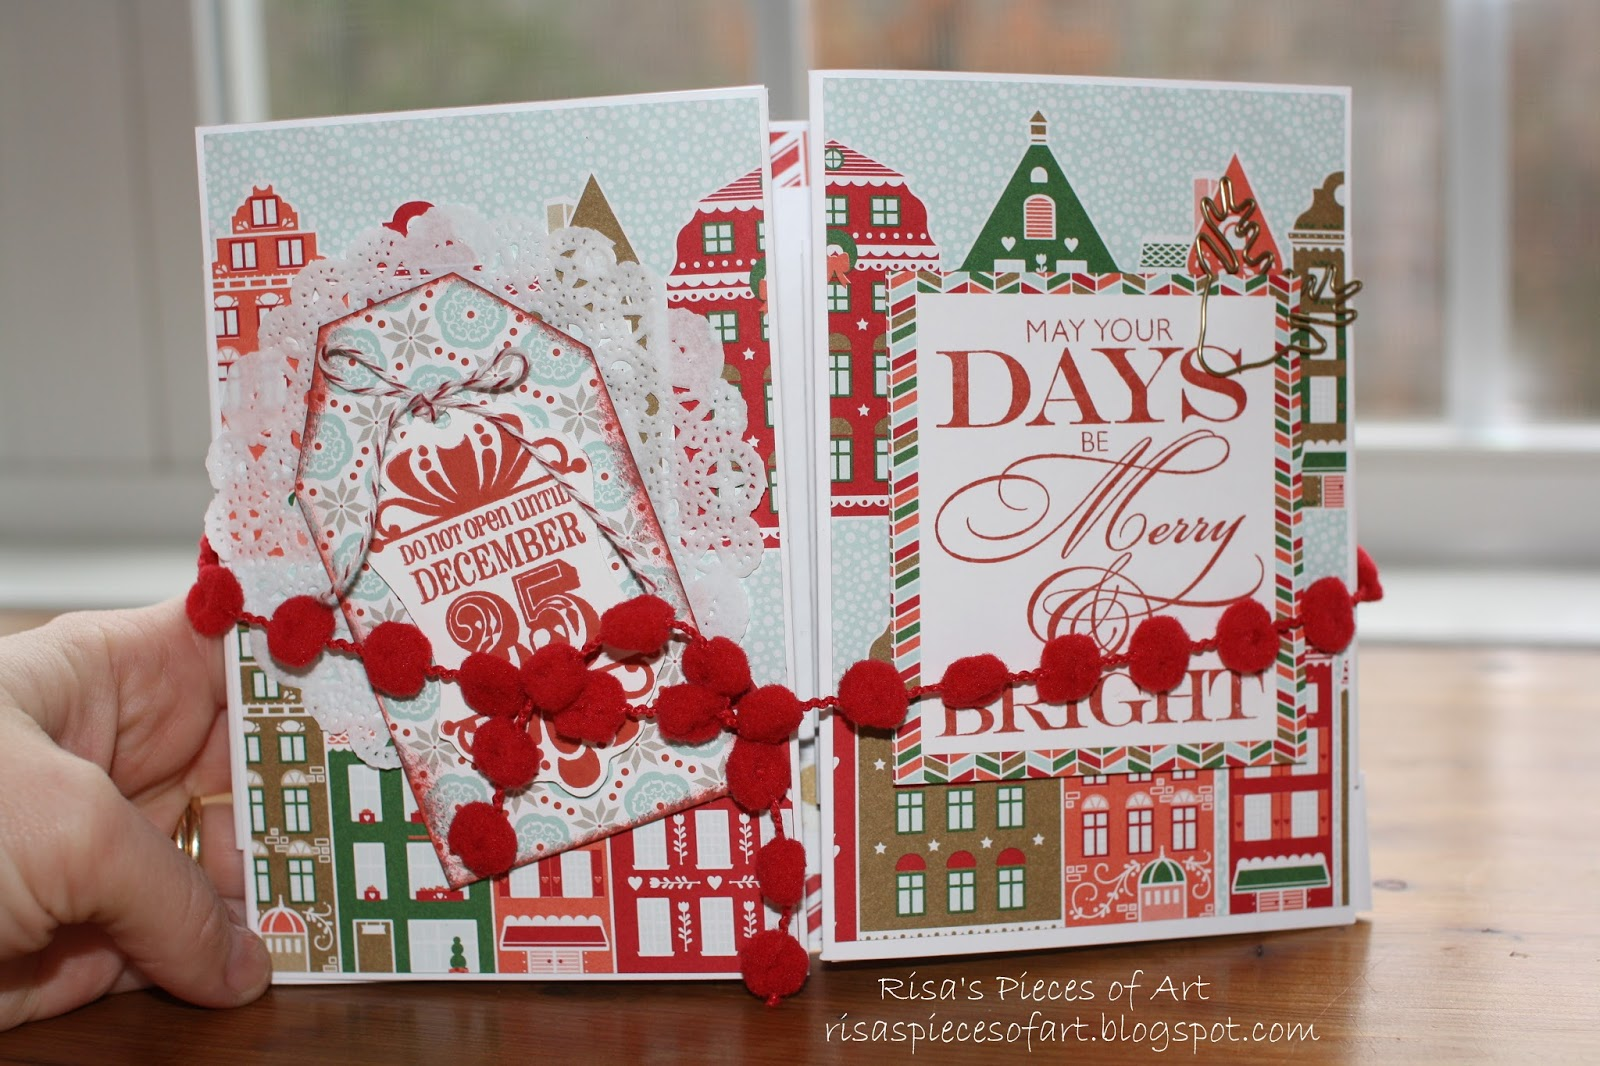 Risas Pieces Of Art Christmas Accordion Display Card